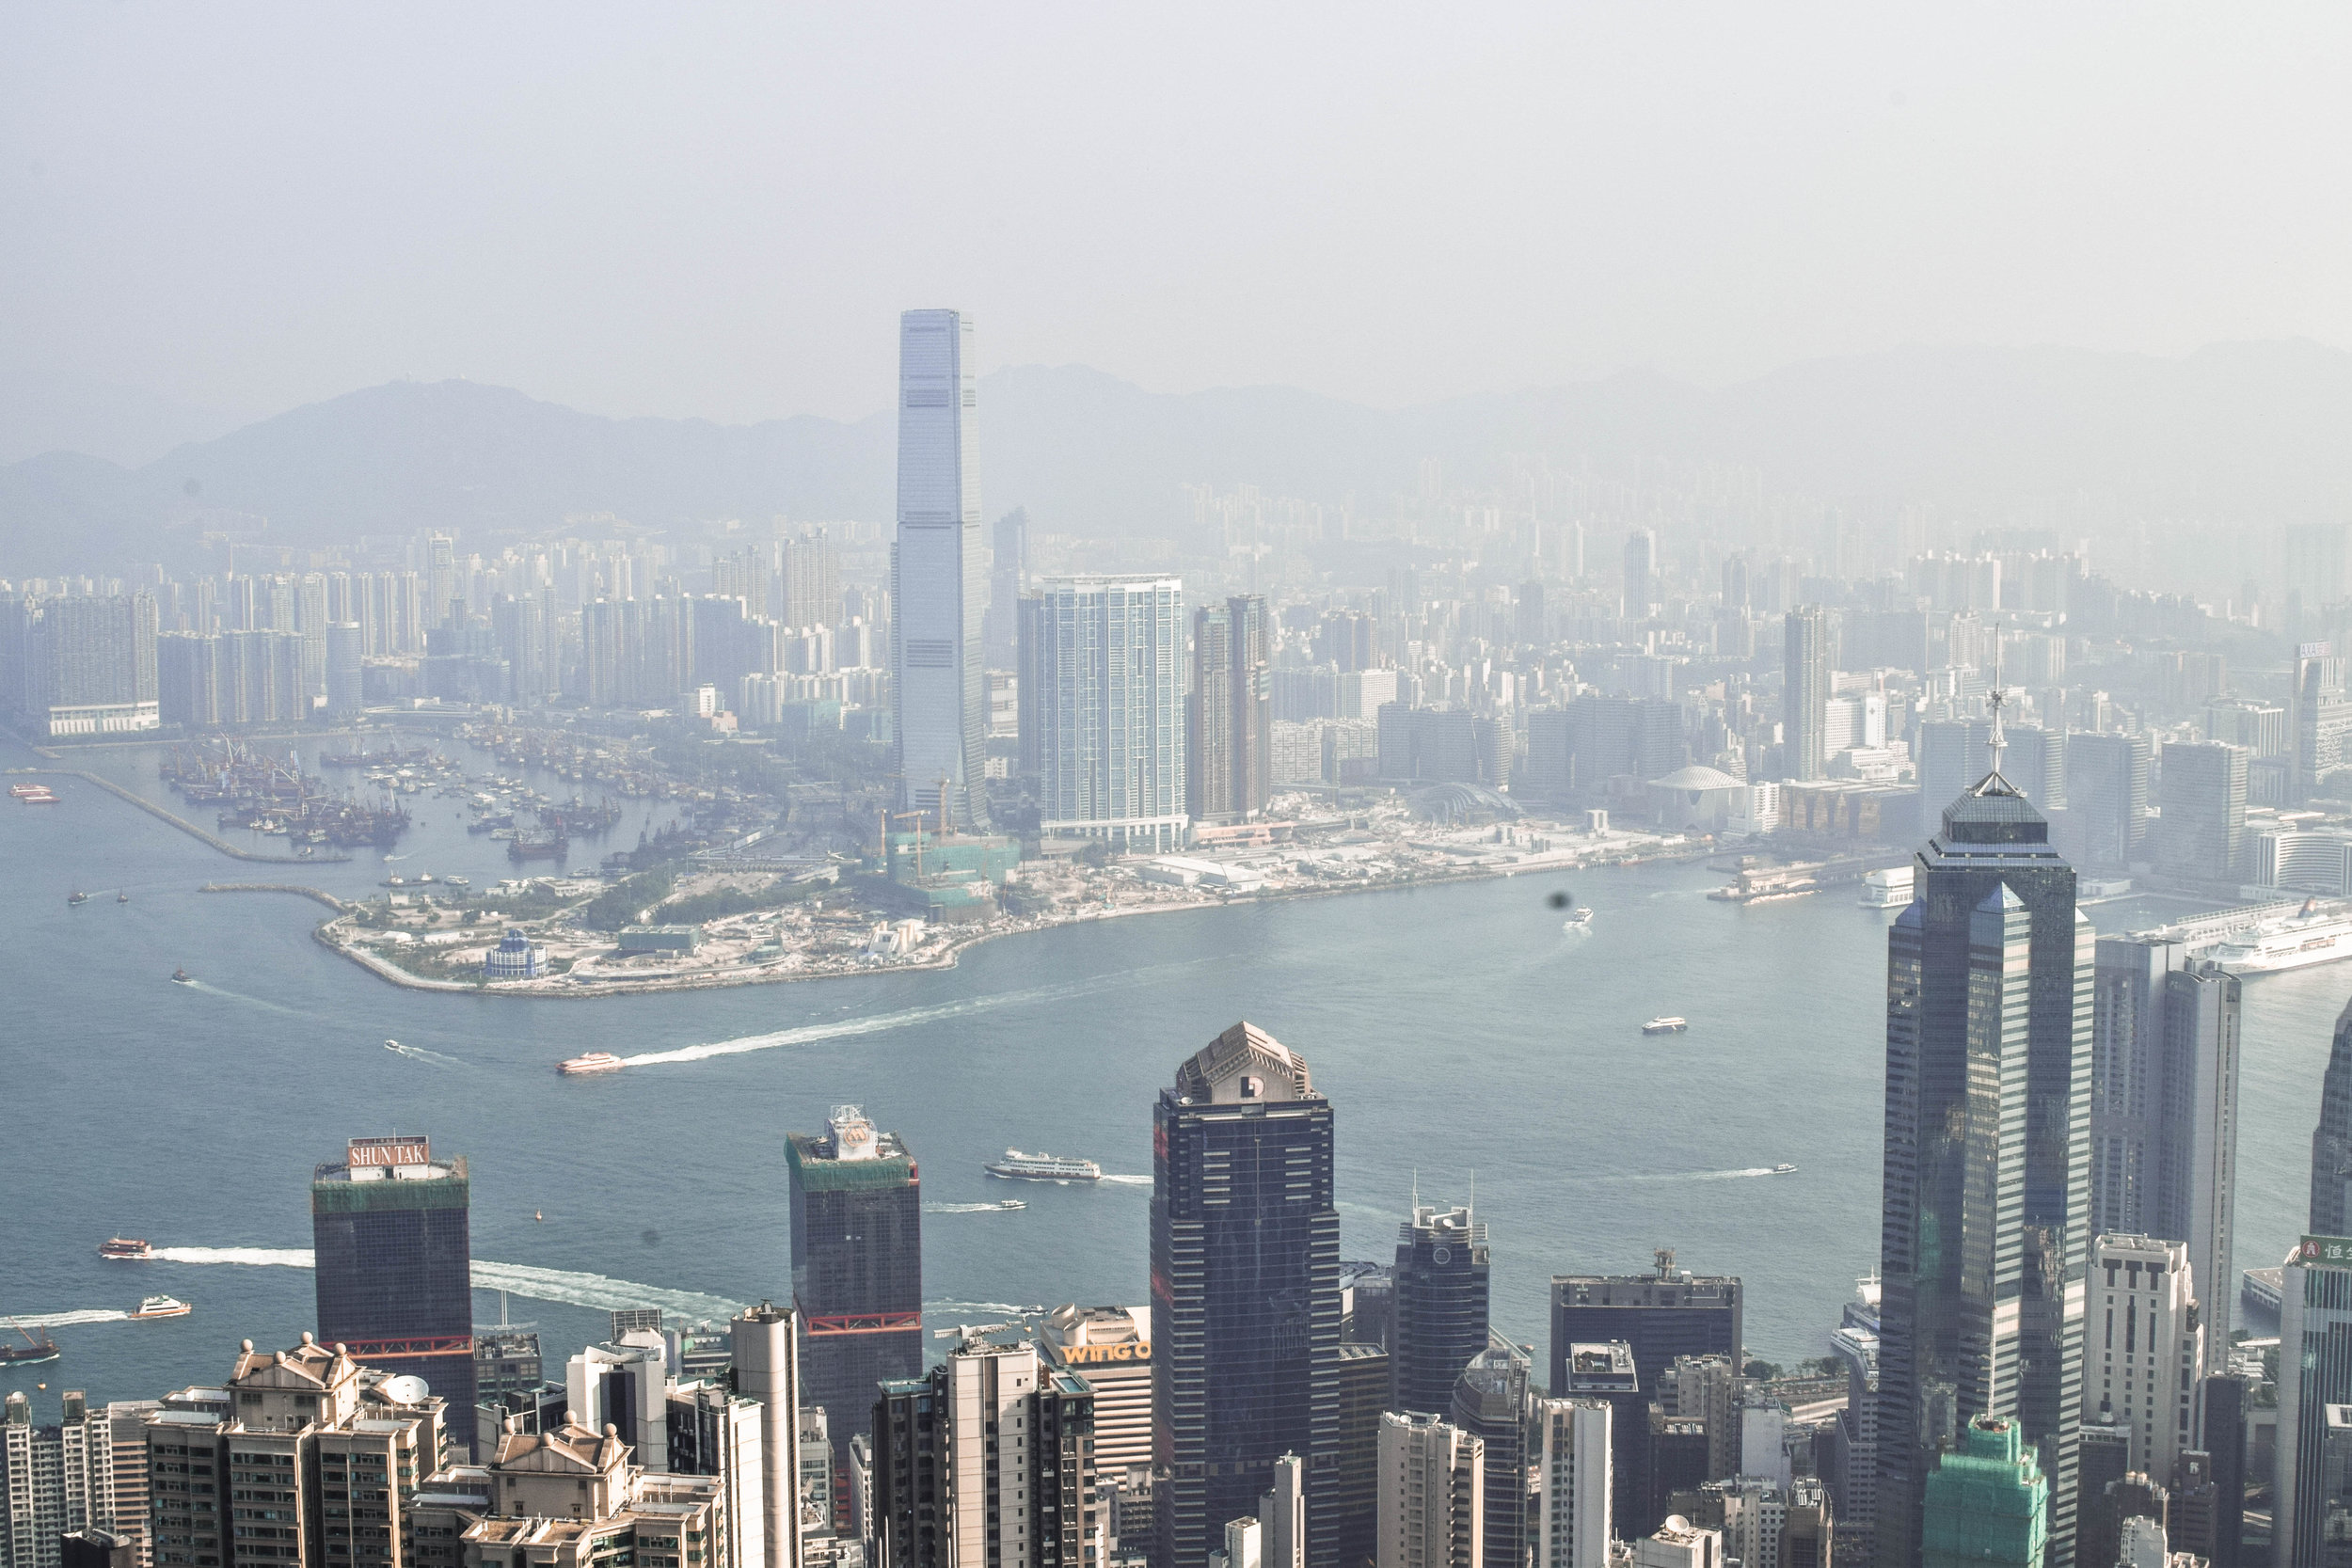 The view from Victoria Peak. Unfortunately it was a very hazy day when we went.